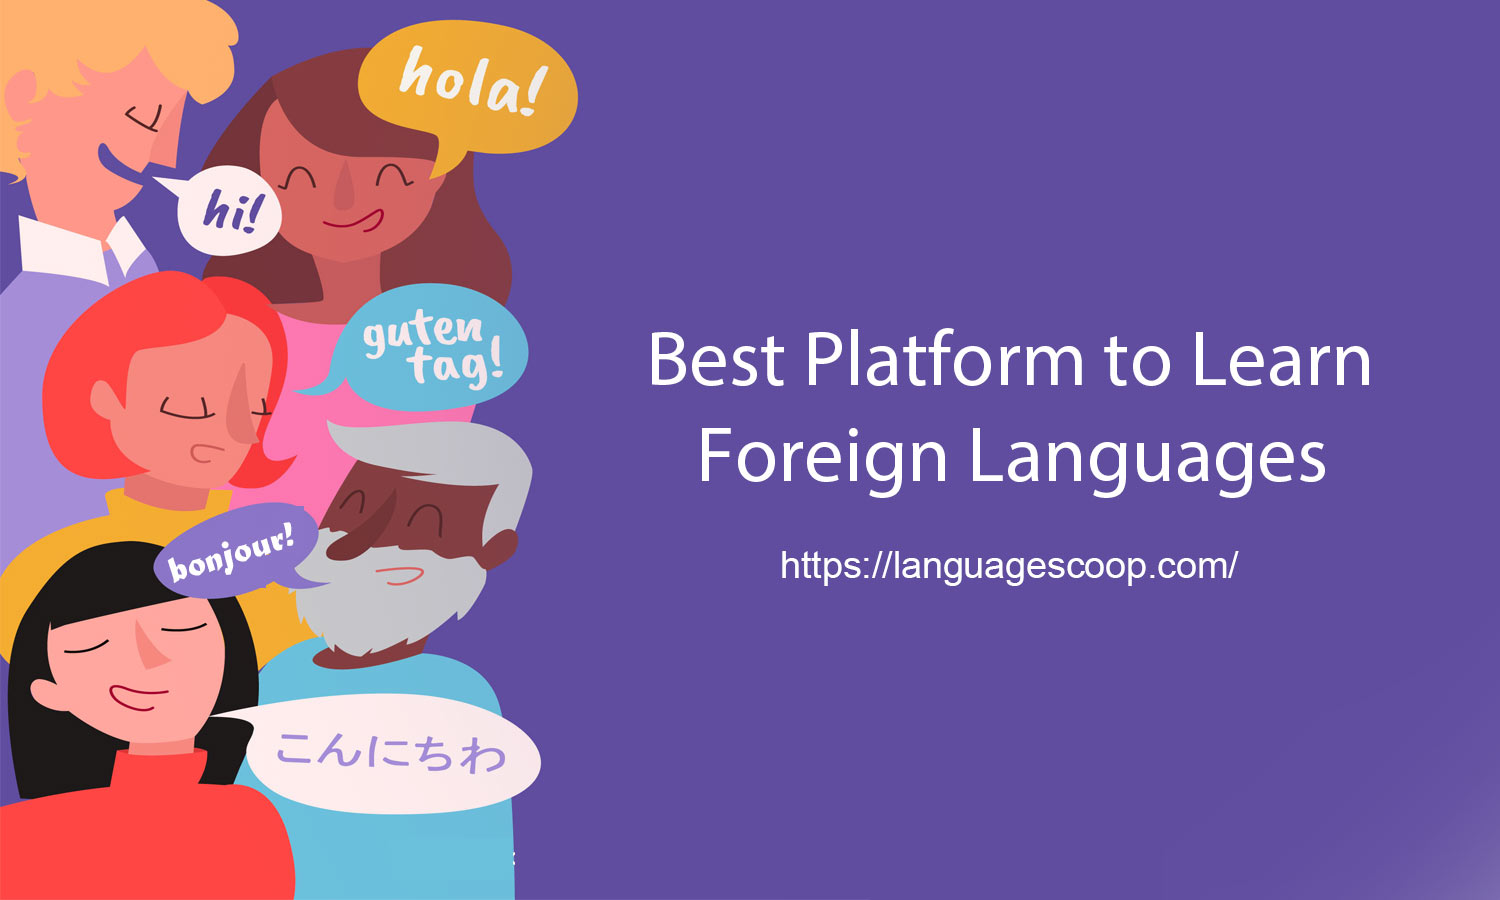 Best Platform to Learn Foreign Languages